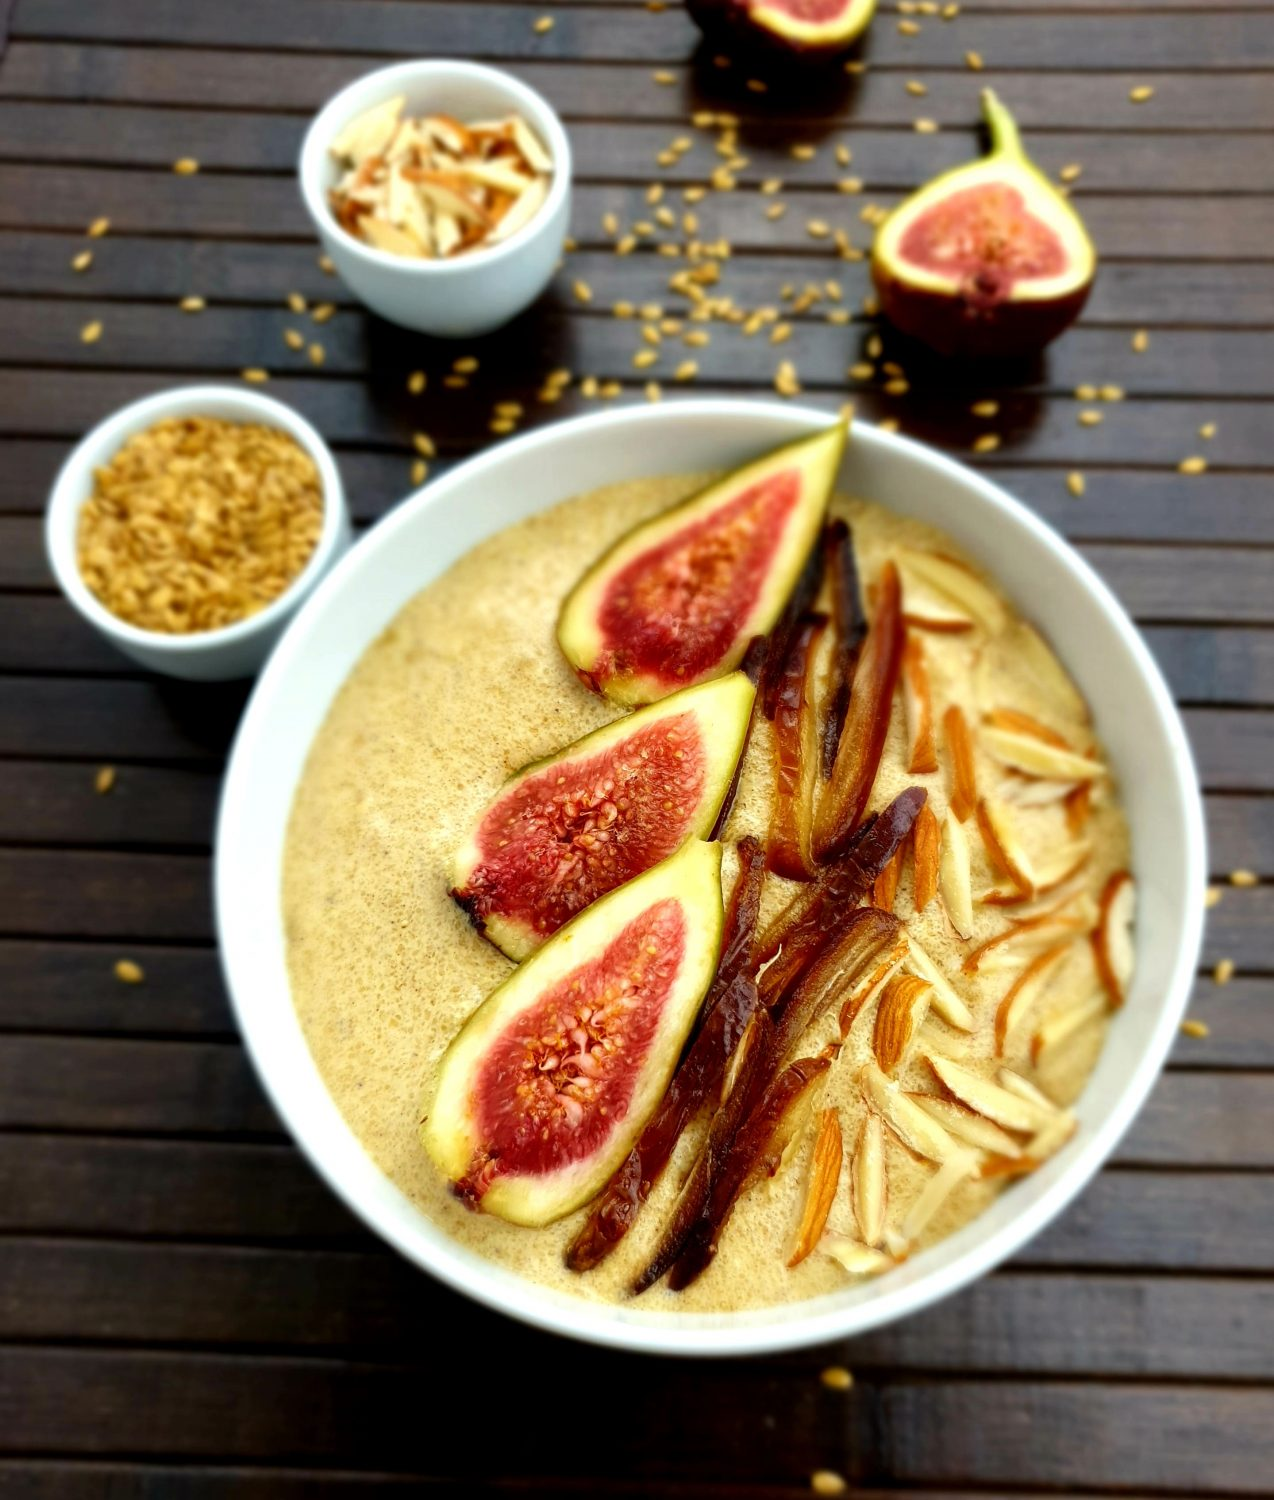 flaxseed porridge with figs and almonds in a white bowl